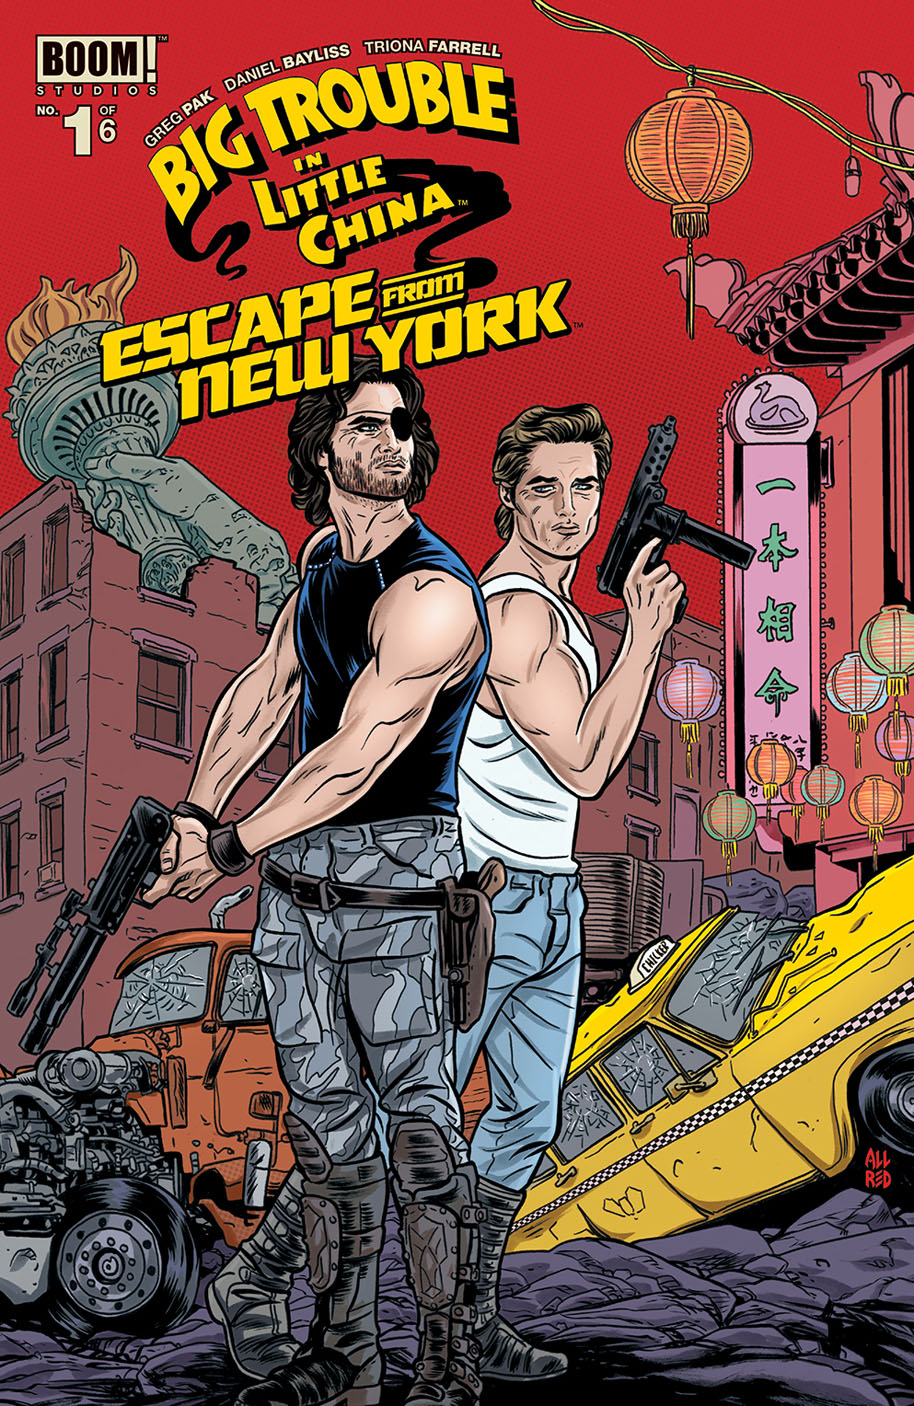 Big Trouble Escape NewYork 001 subscription cover